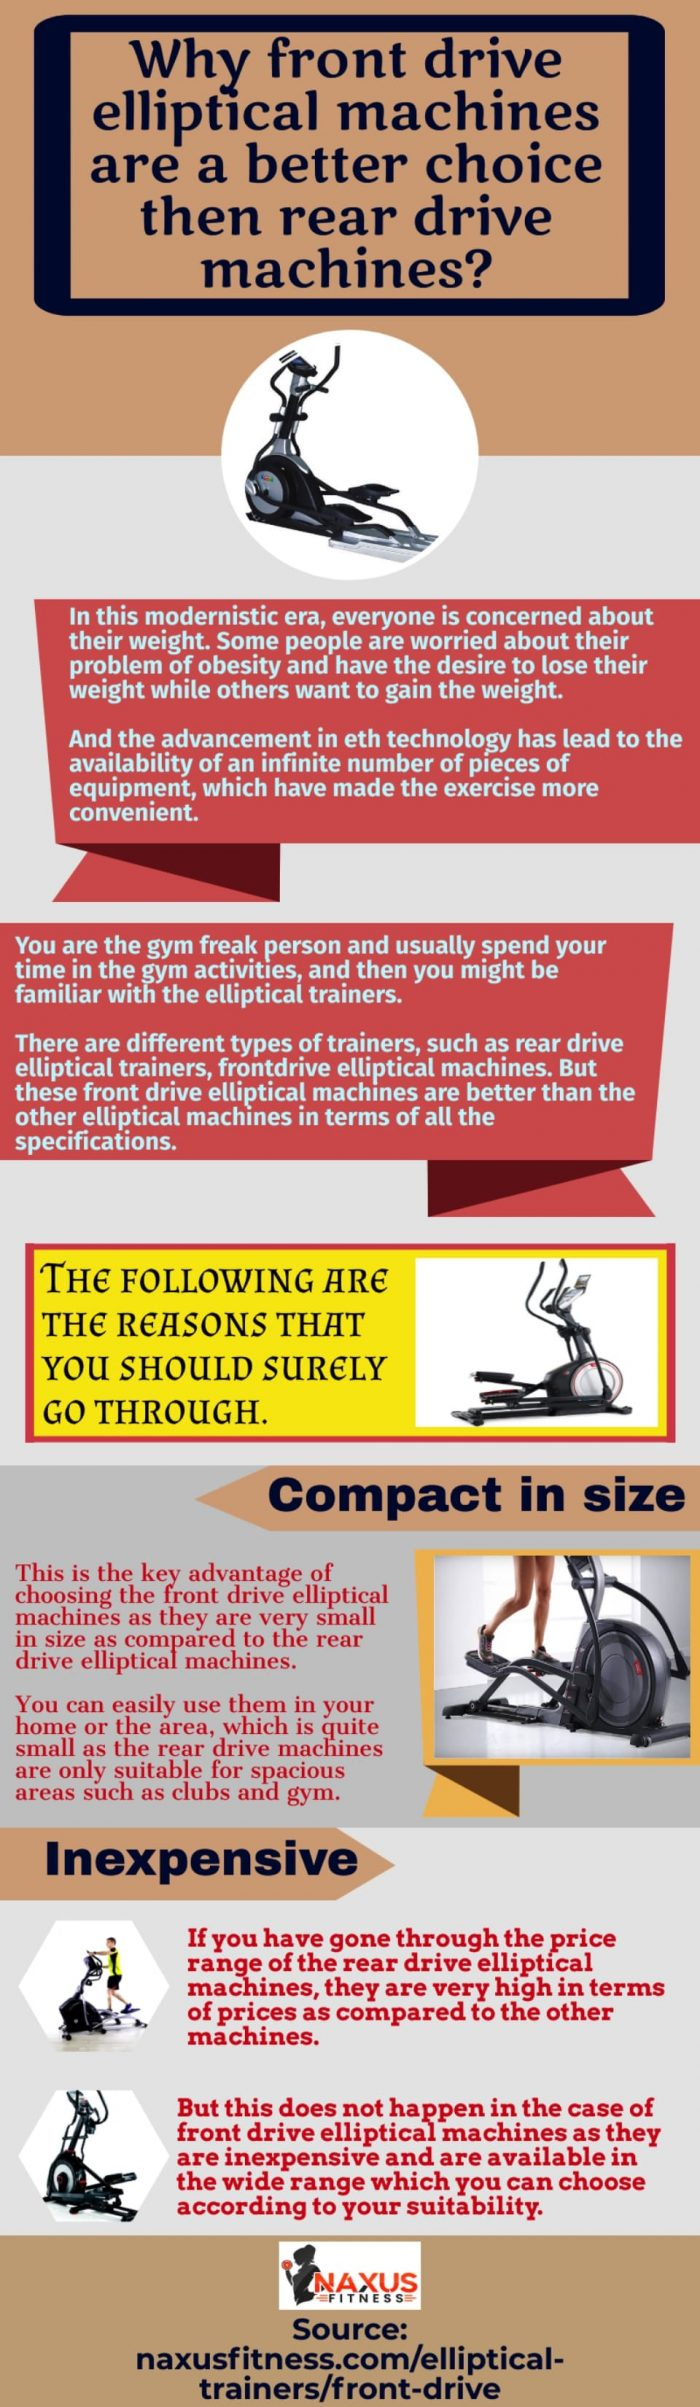 Front drive elliptical trainers are the best kind of trainers that you can choose for your exercise